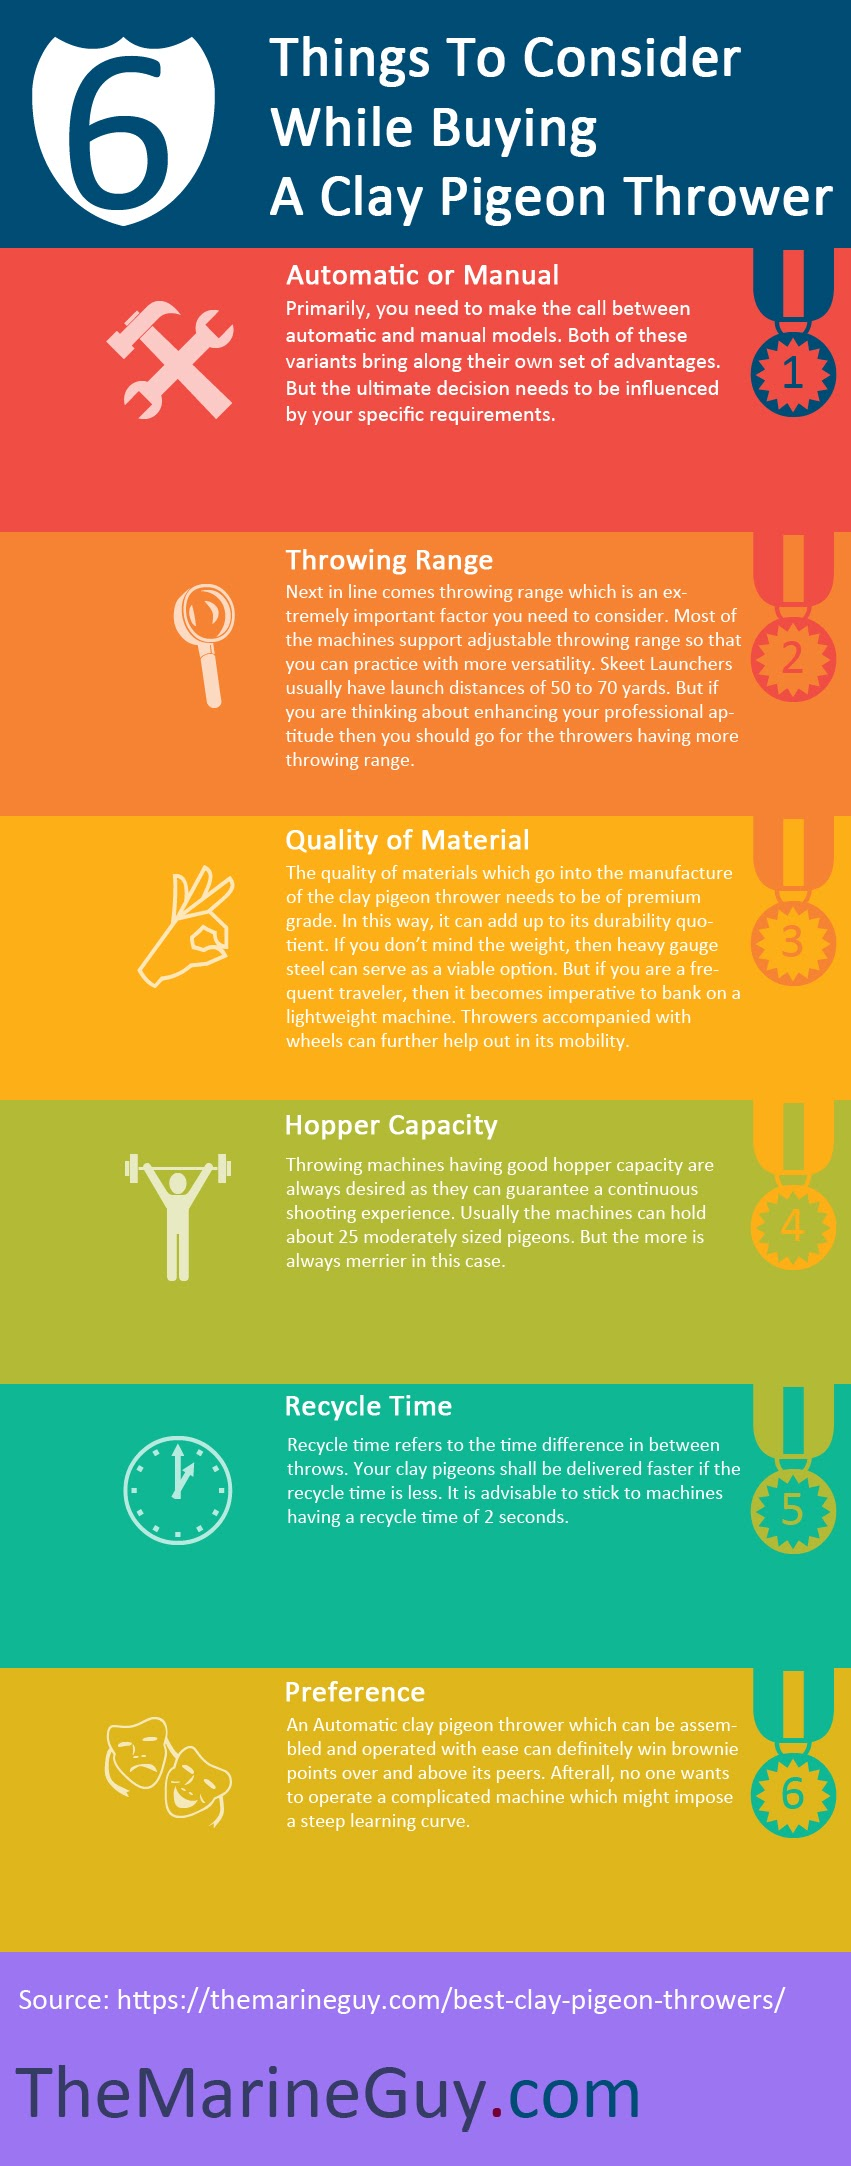 6 Things To Consider While Buying a Clay Pigeon Thrower #infographic